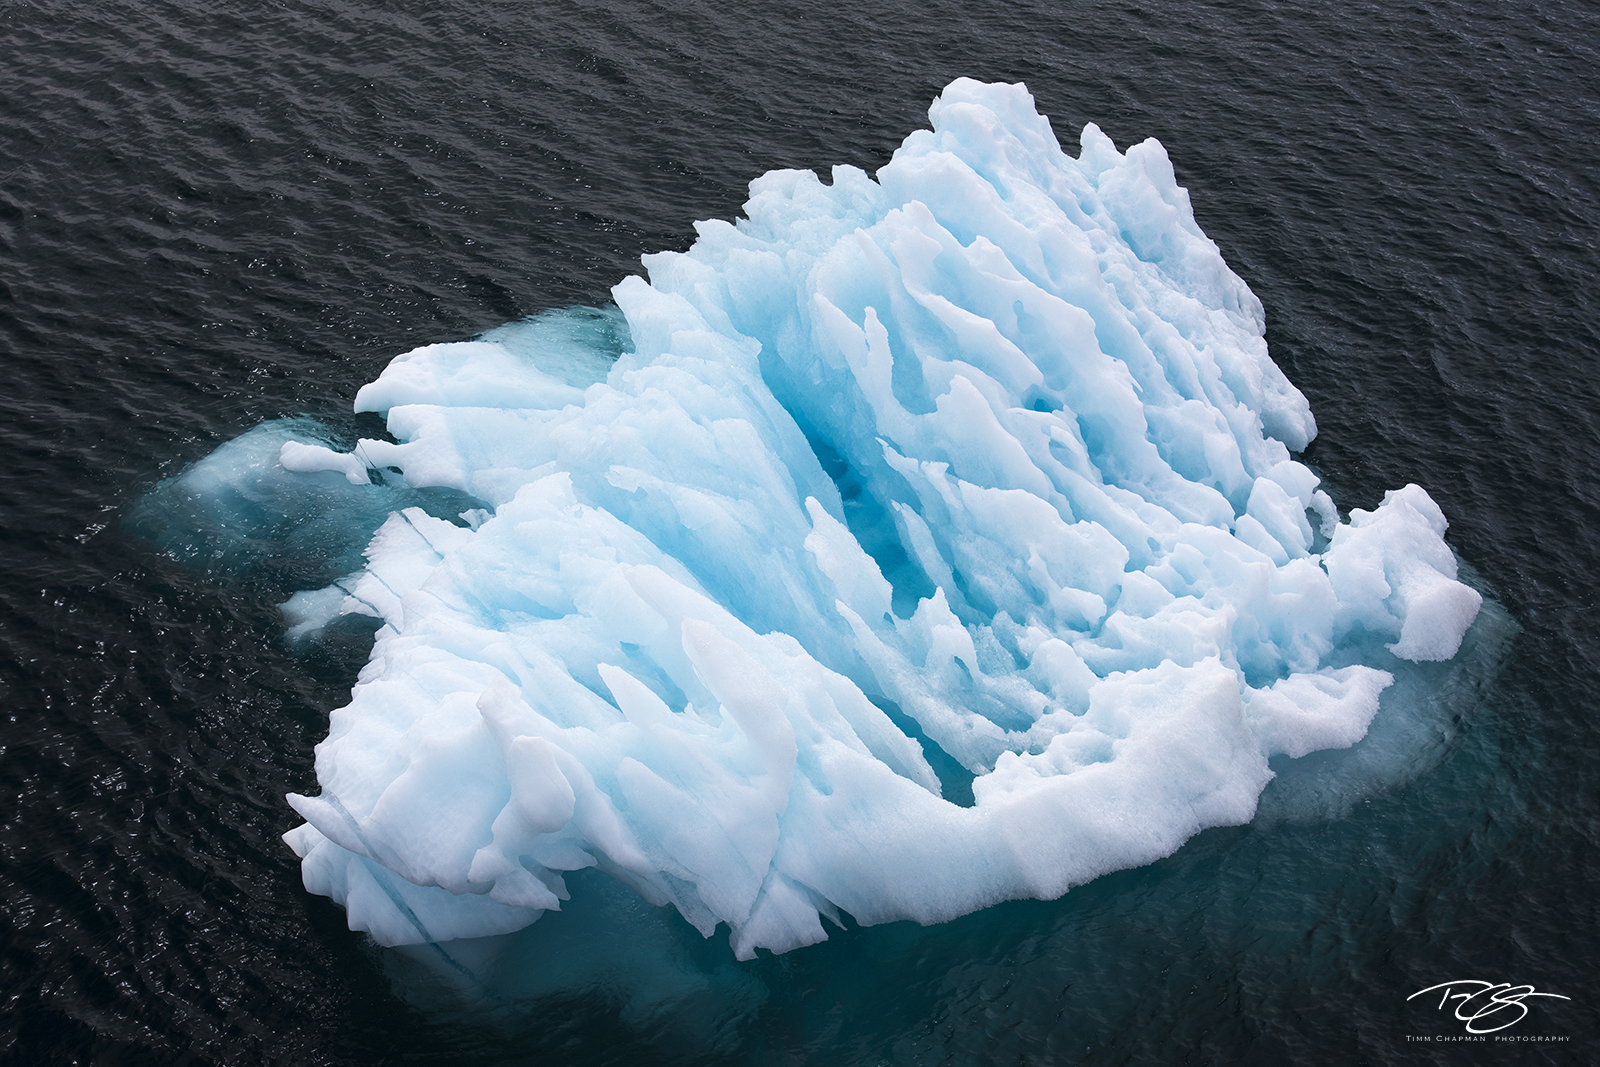 ice, iceberg, blue ice, turquoise, aqua, iceberg visible under water, iceberg visible underwater, sculpture, sculpted, photo